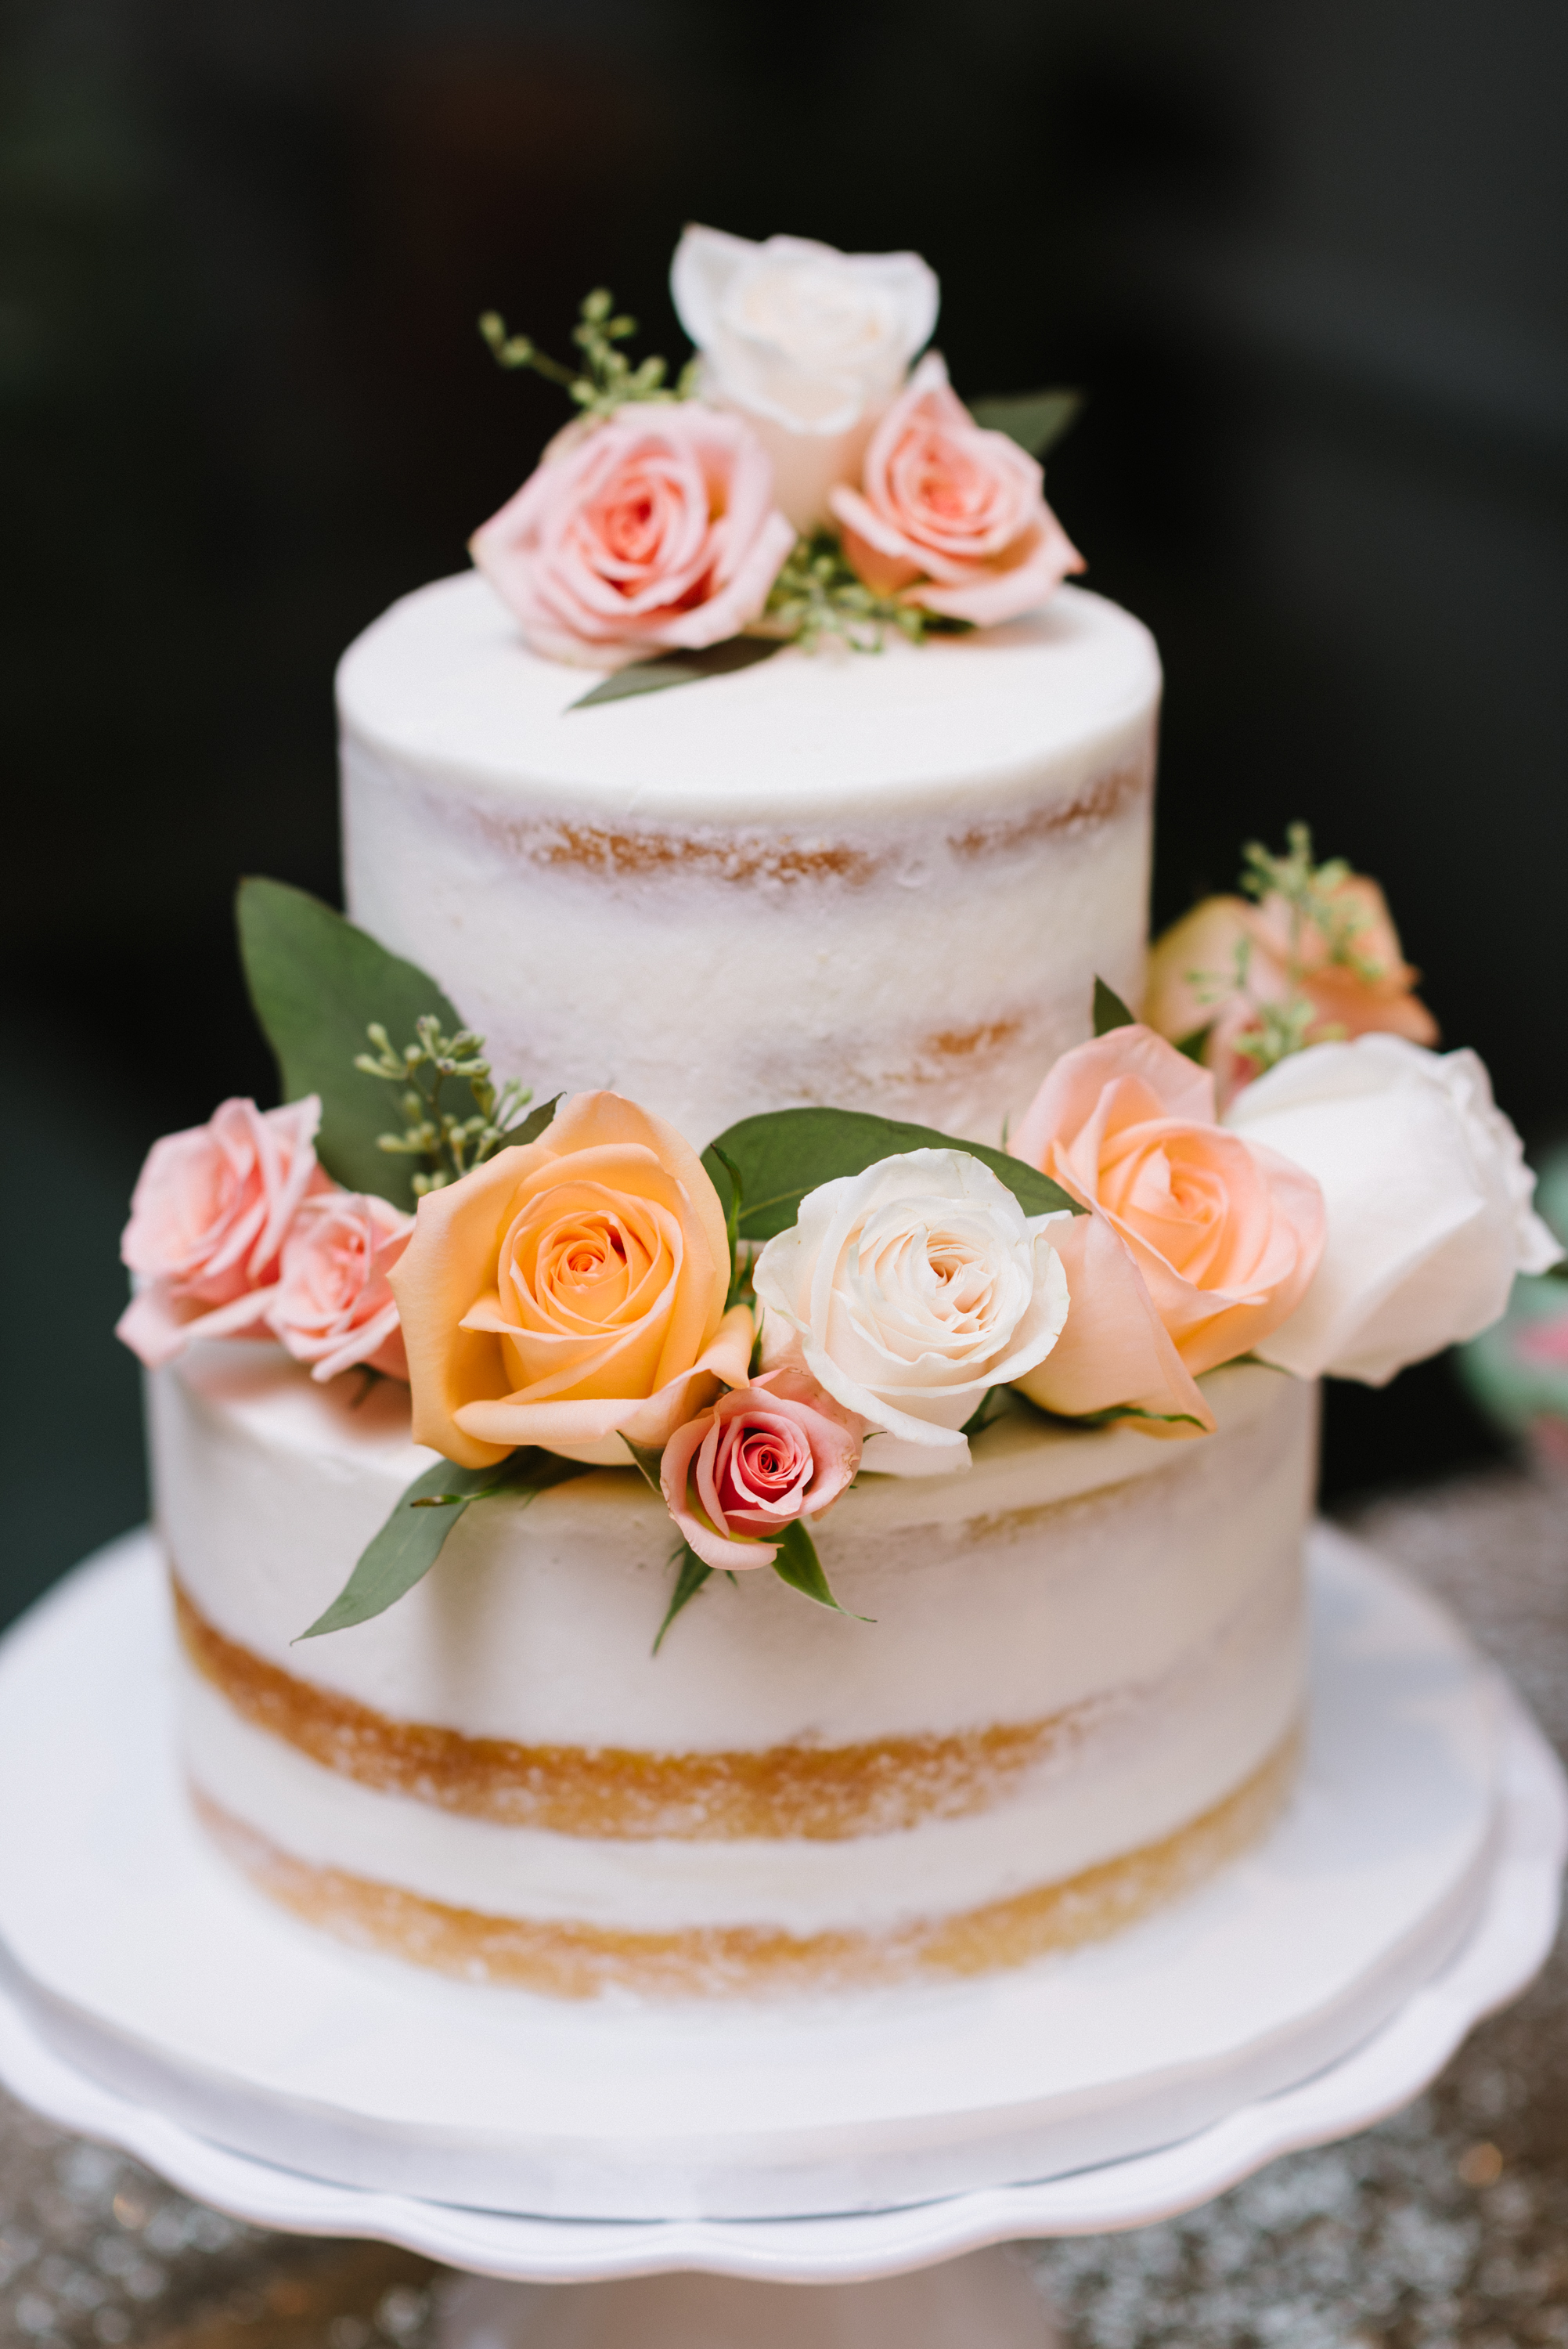 Vanilla naked cakes, dressed in floral and greenery, are the ultimate rustic-themed wedding choice. Venue:    St. Marys Golf & Country Club   . Photography:    Erin Leydon   .